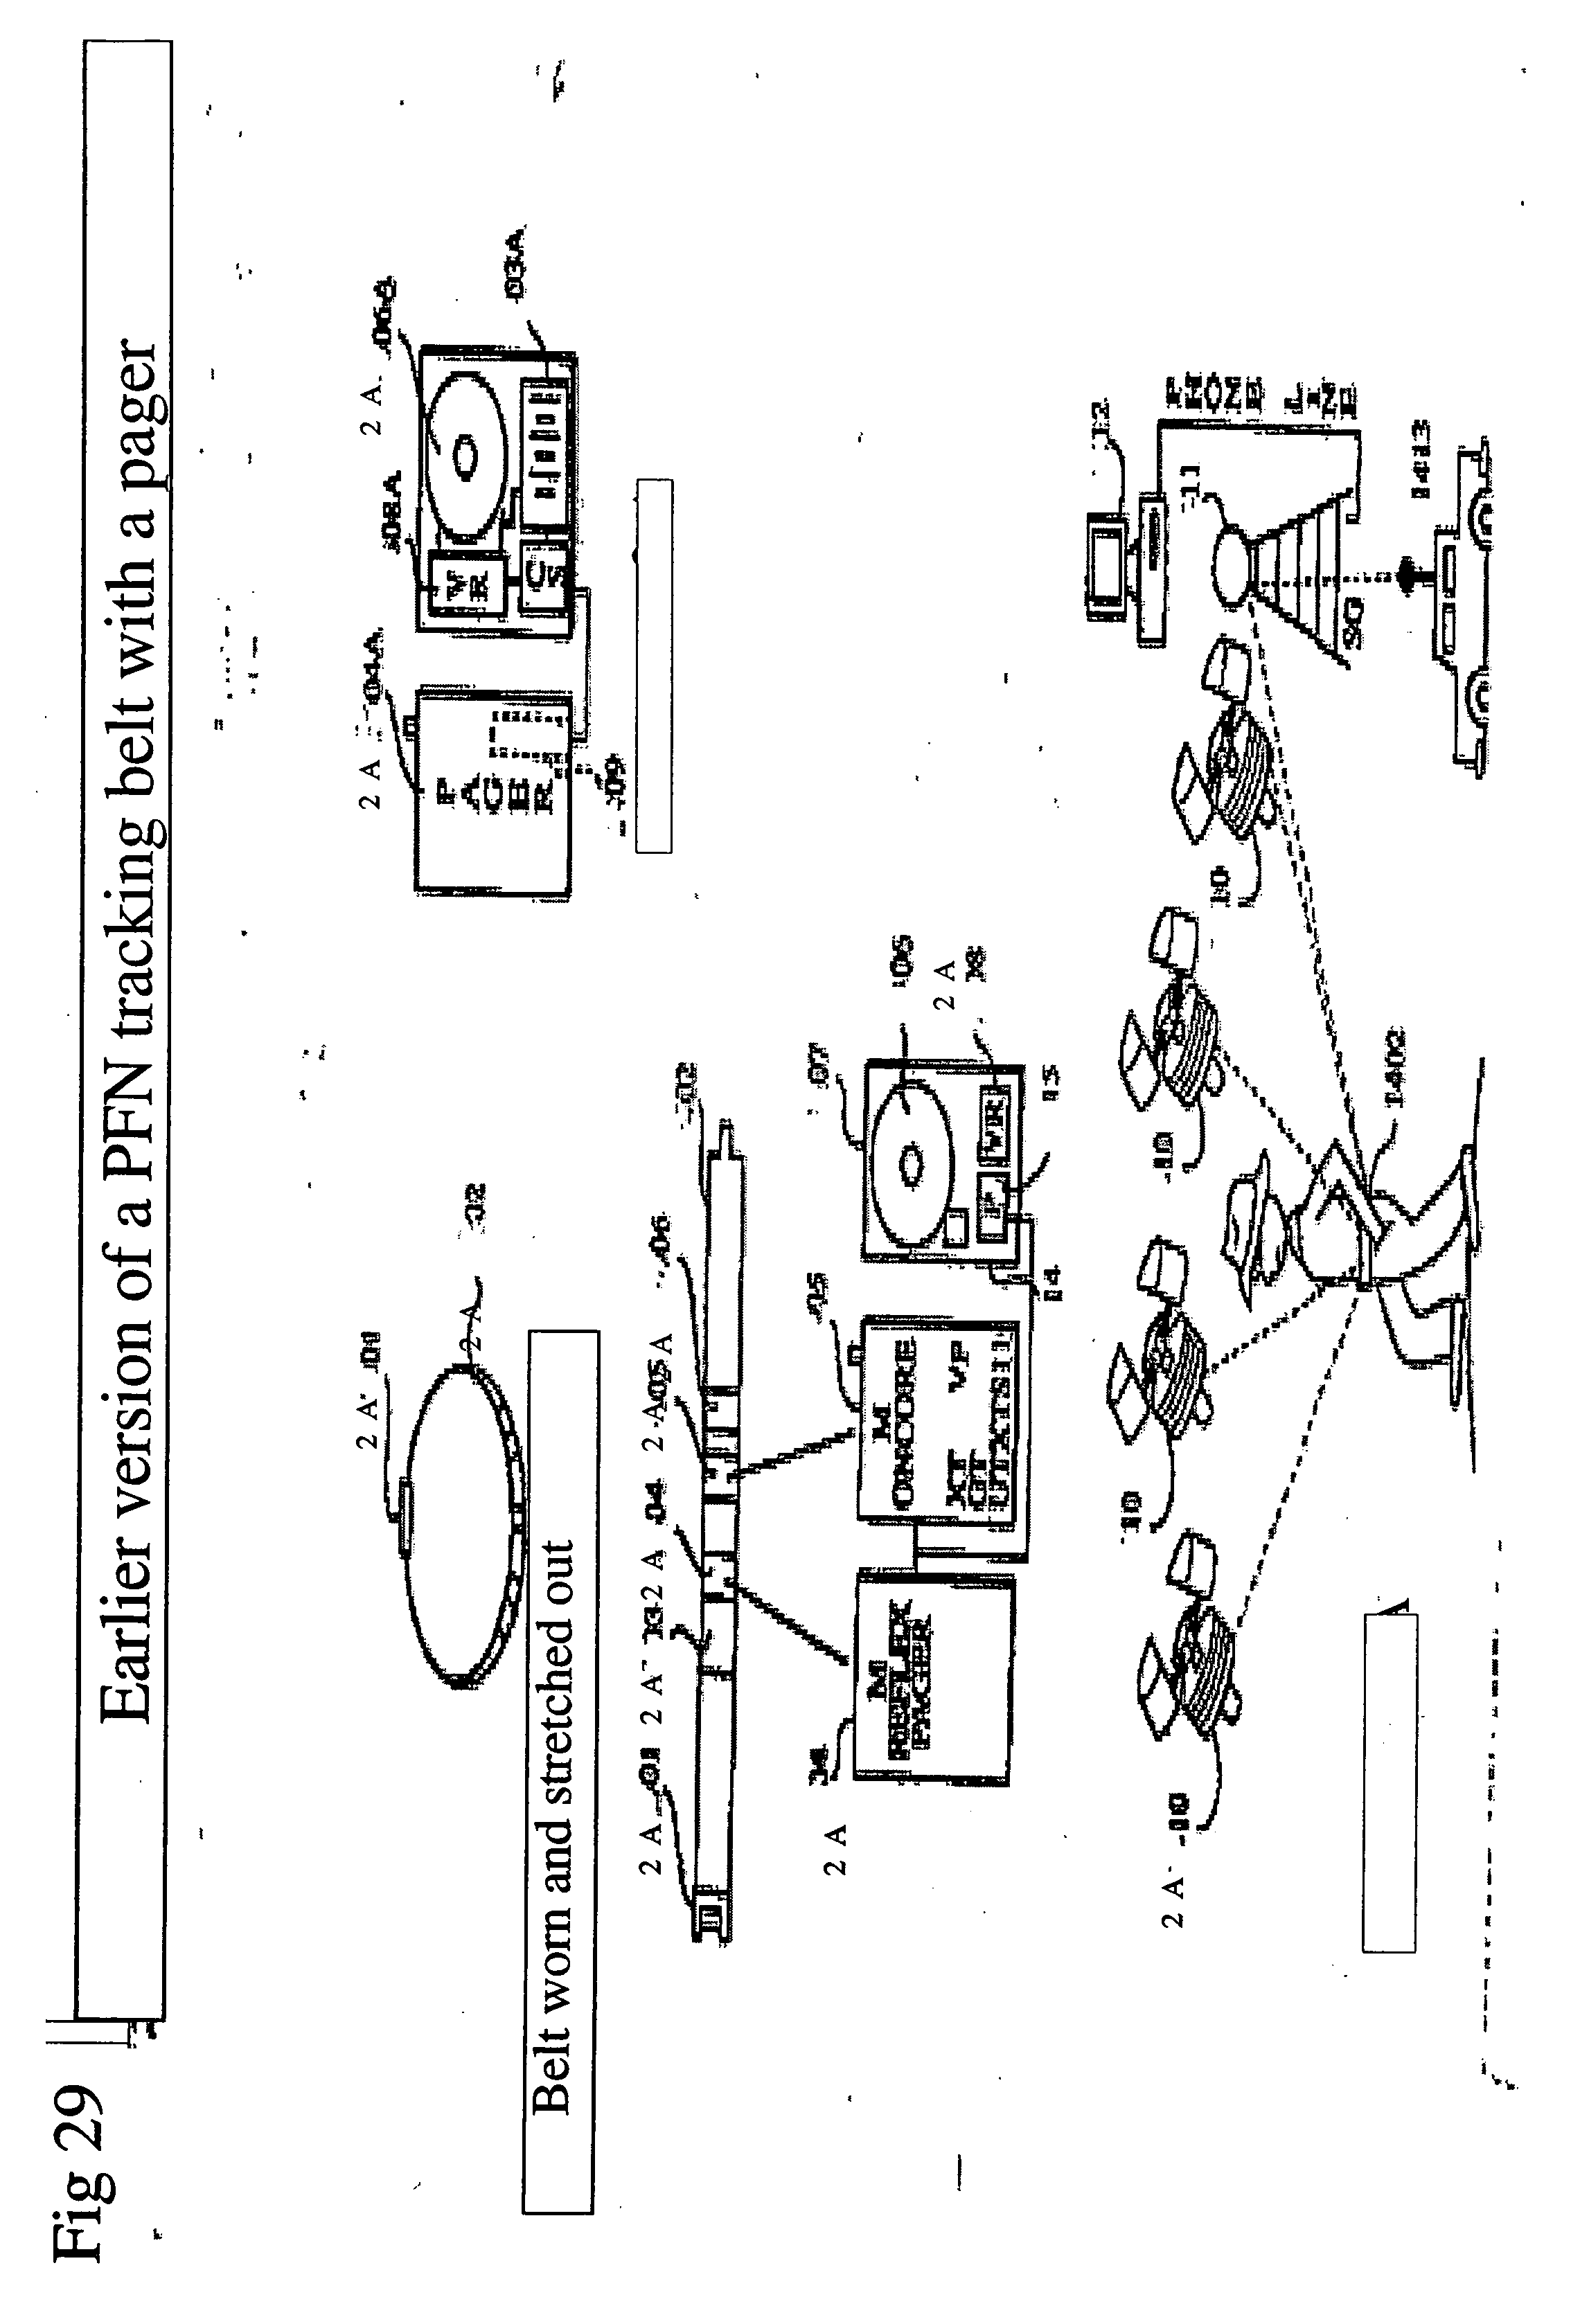 Patent Us20050187677 Pfn Trac Systemtm Faa Upgrades For Wiring Diagram Symbols Embraer Drawing